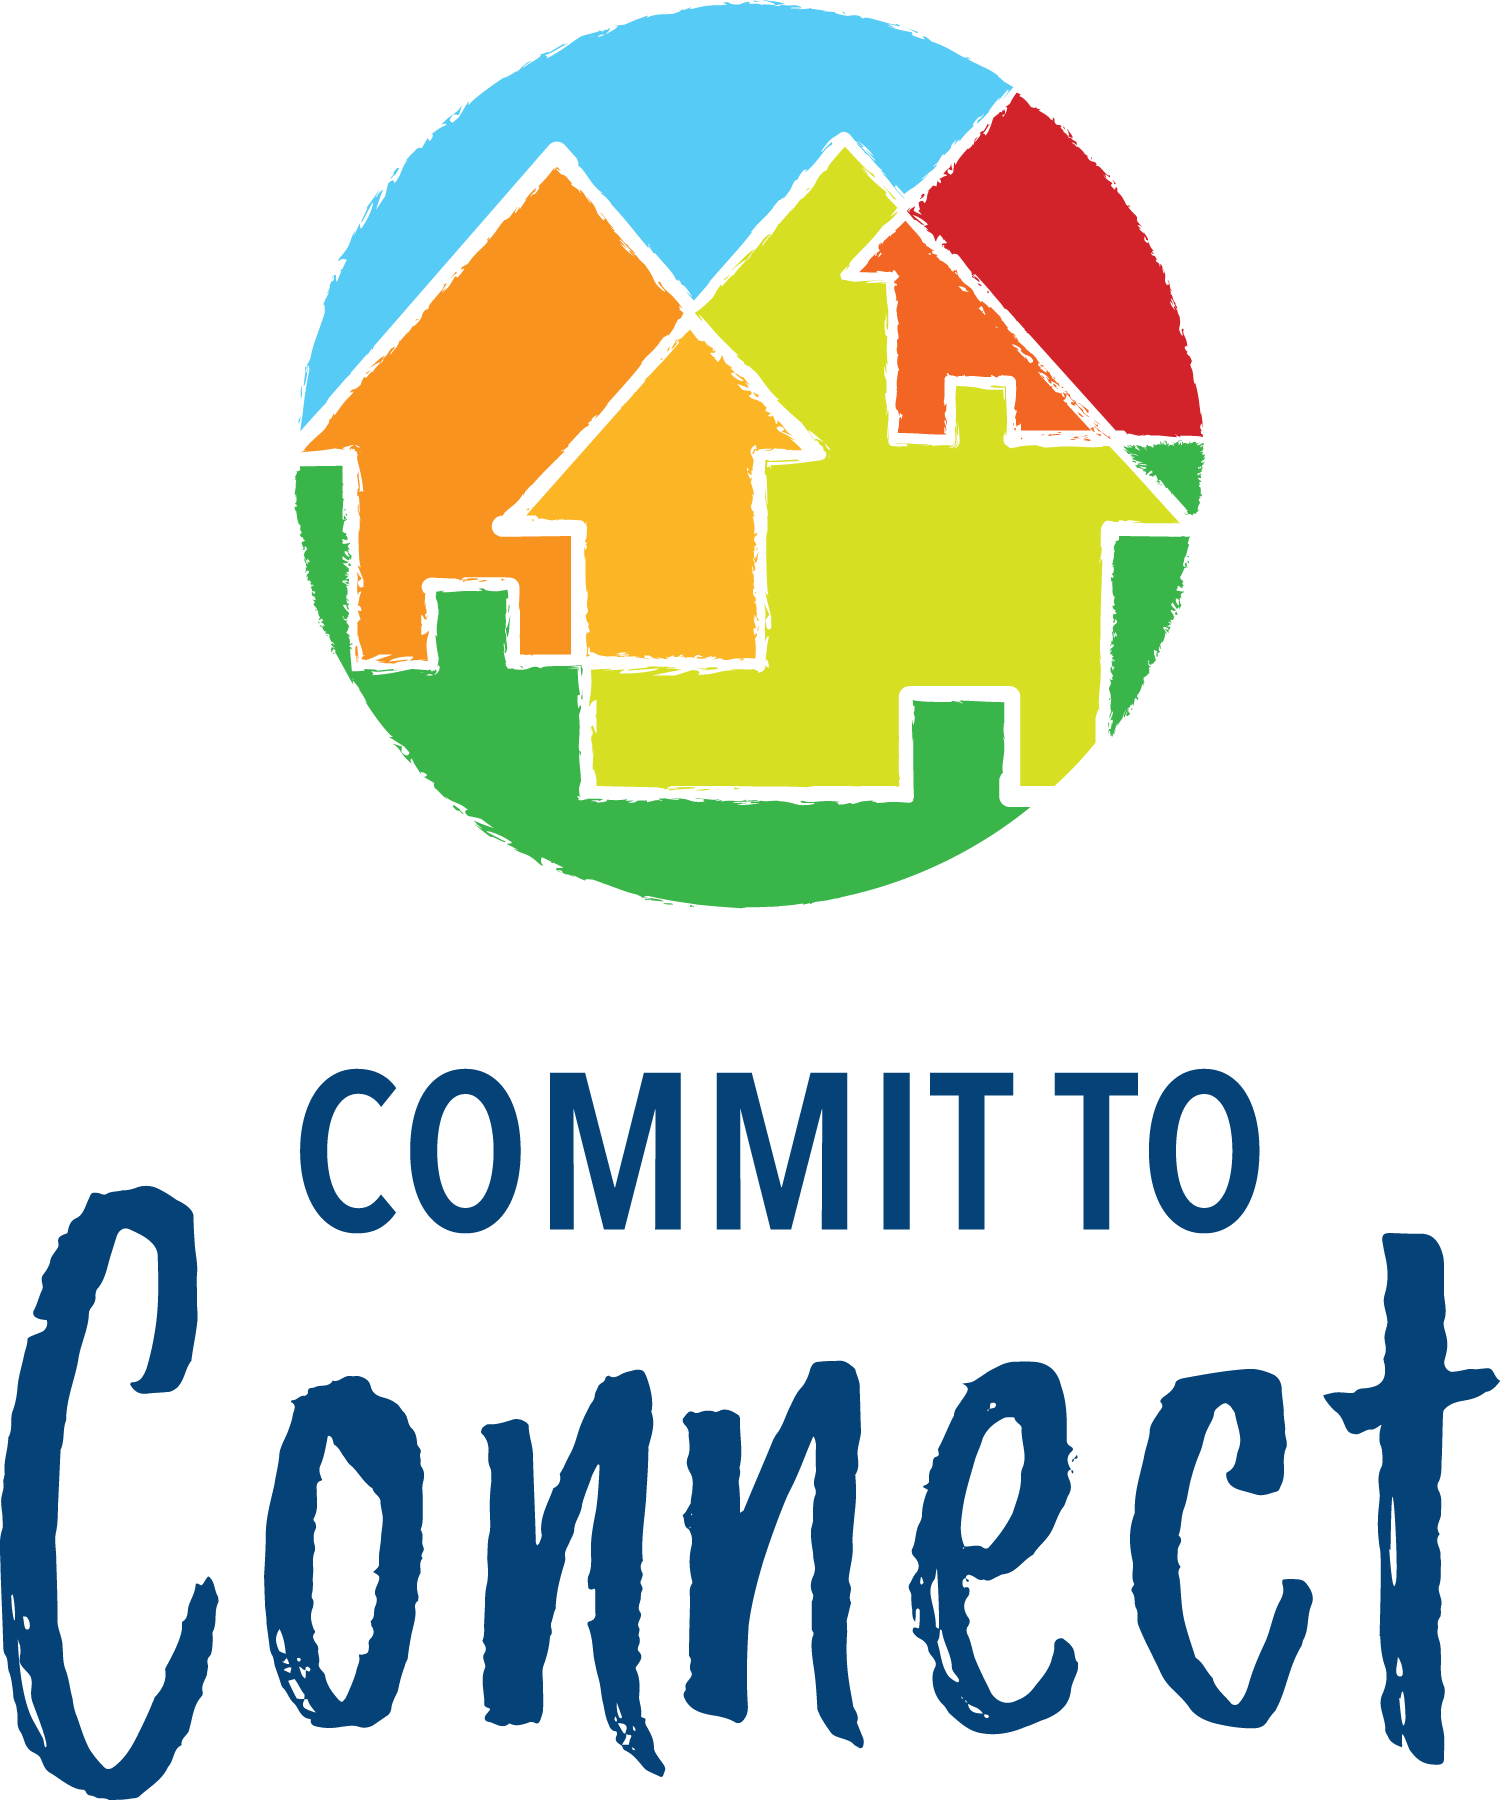 Commit to Connect logo